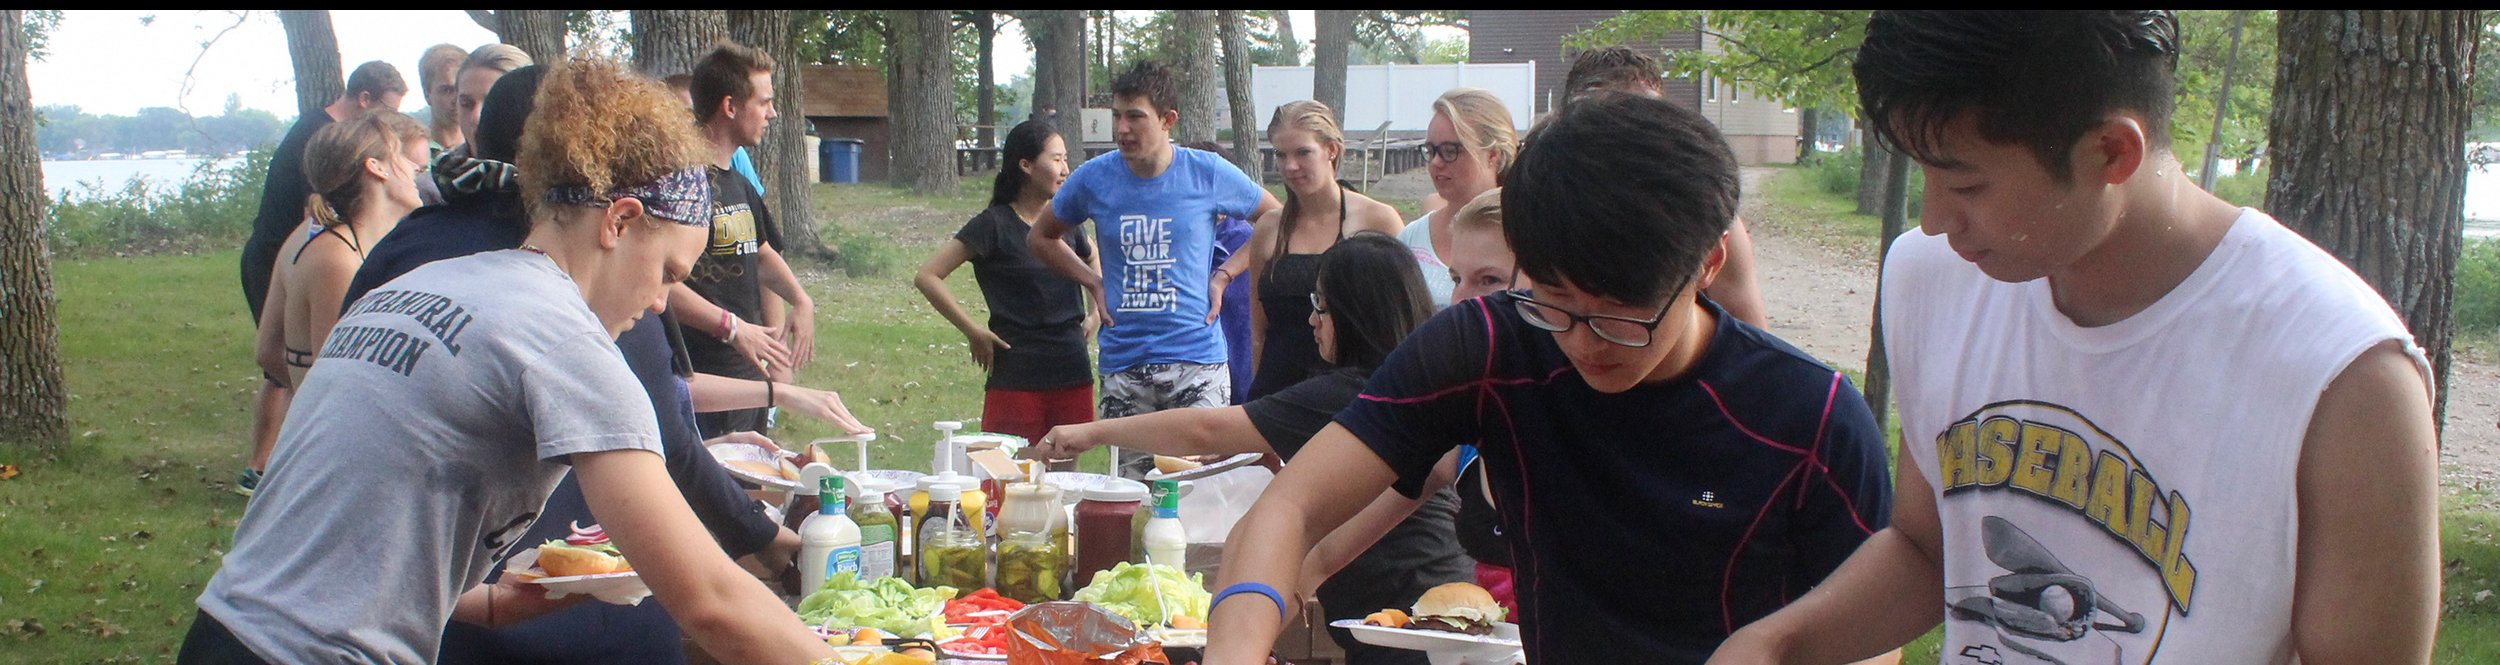 Students get food from a buffet line outdoors.